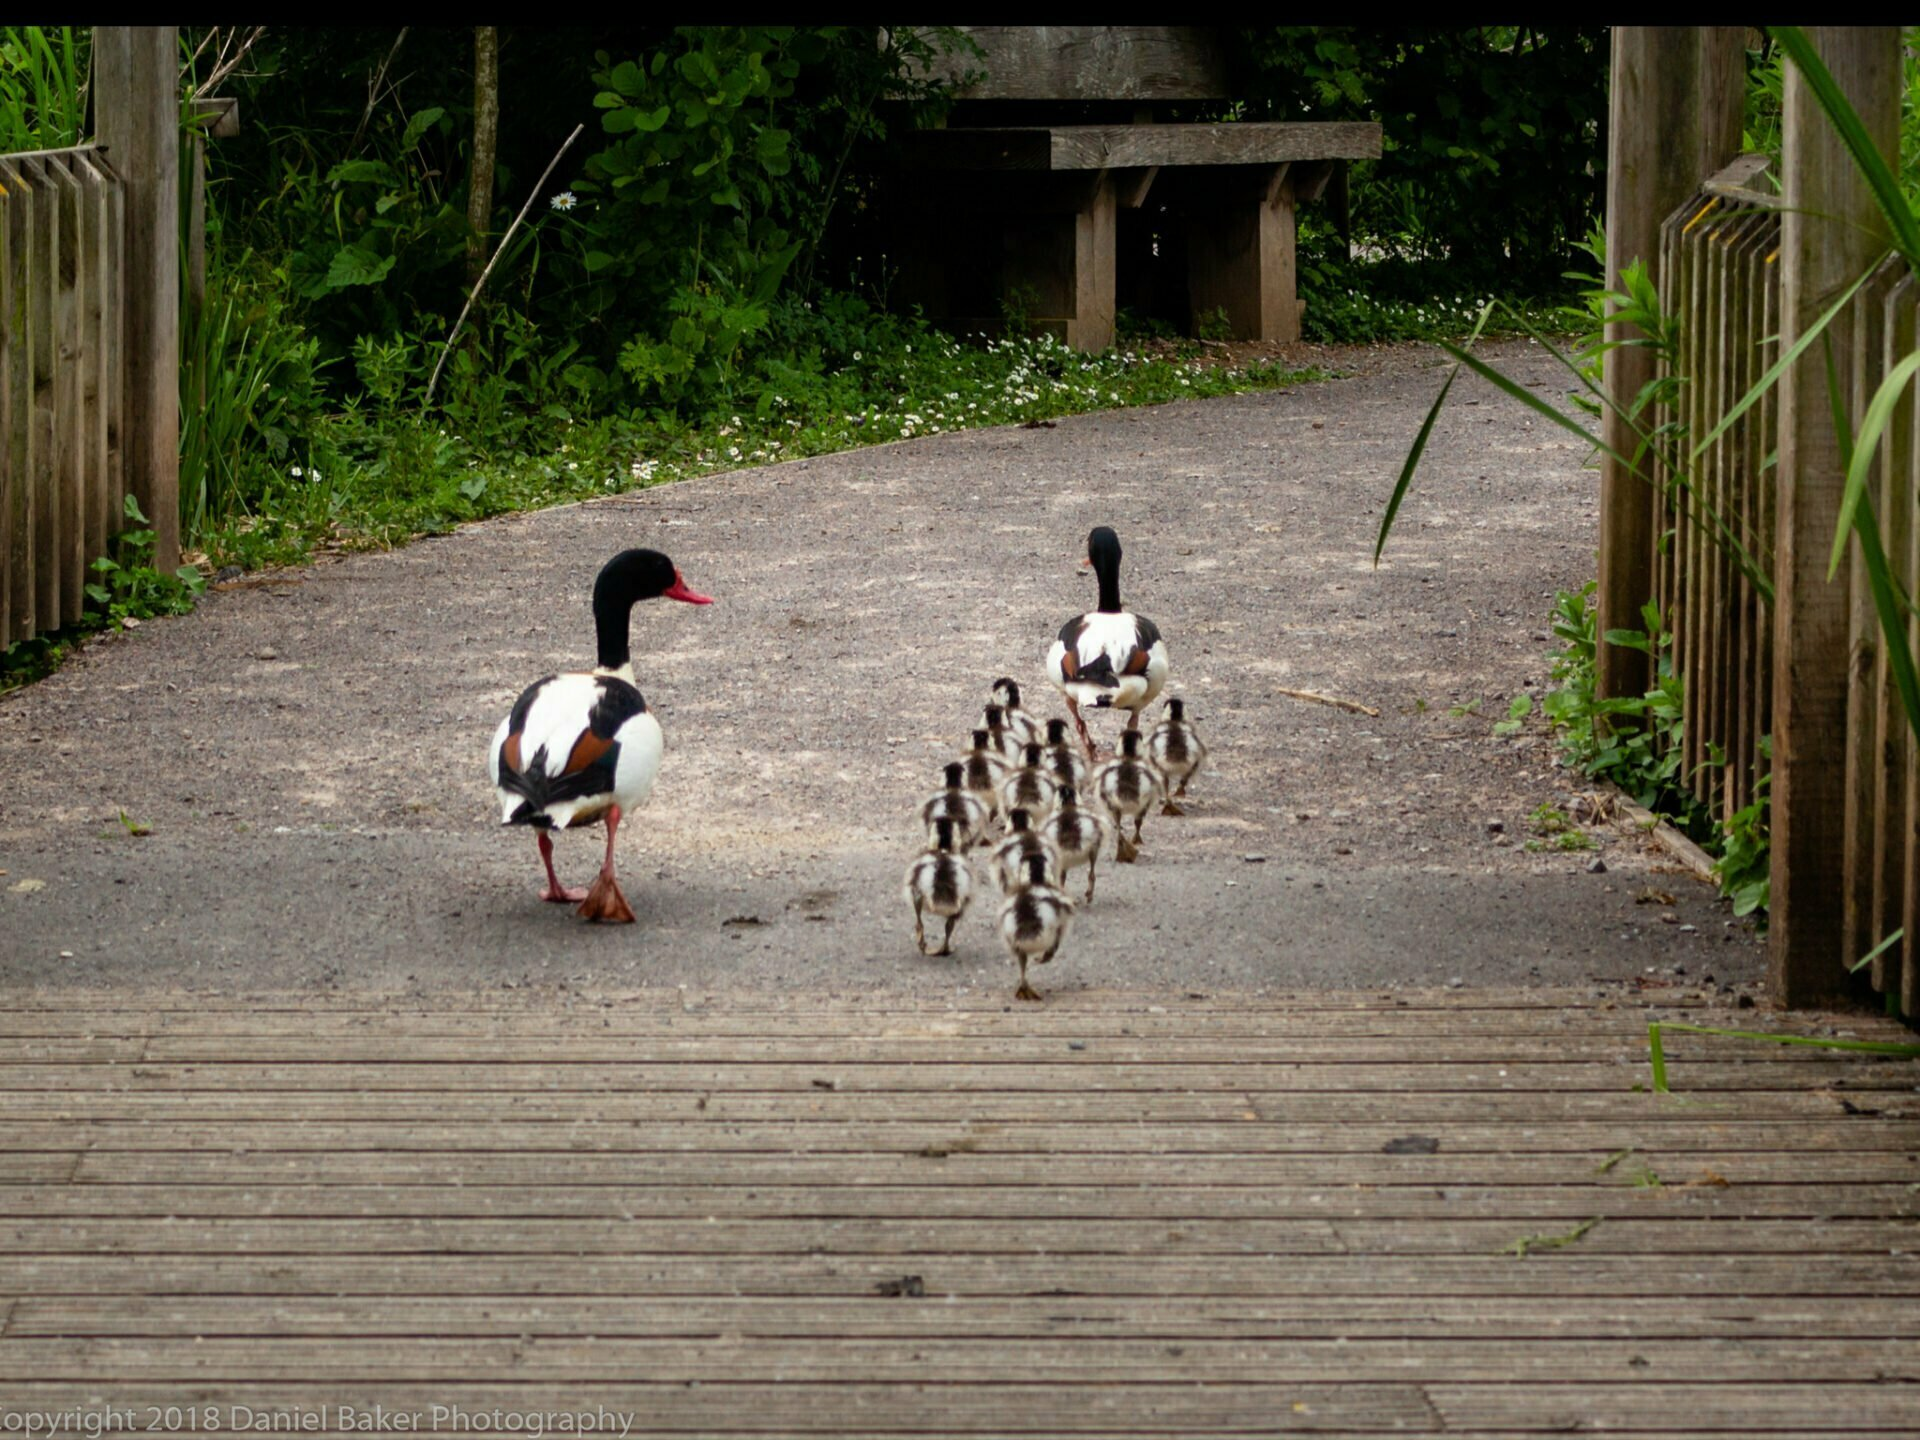 A duck watching her ducklings walk in a line